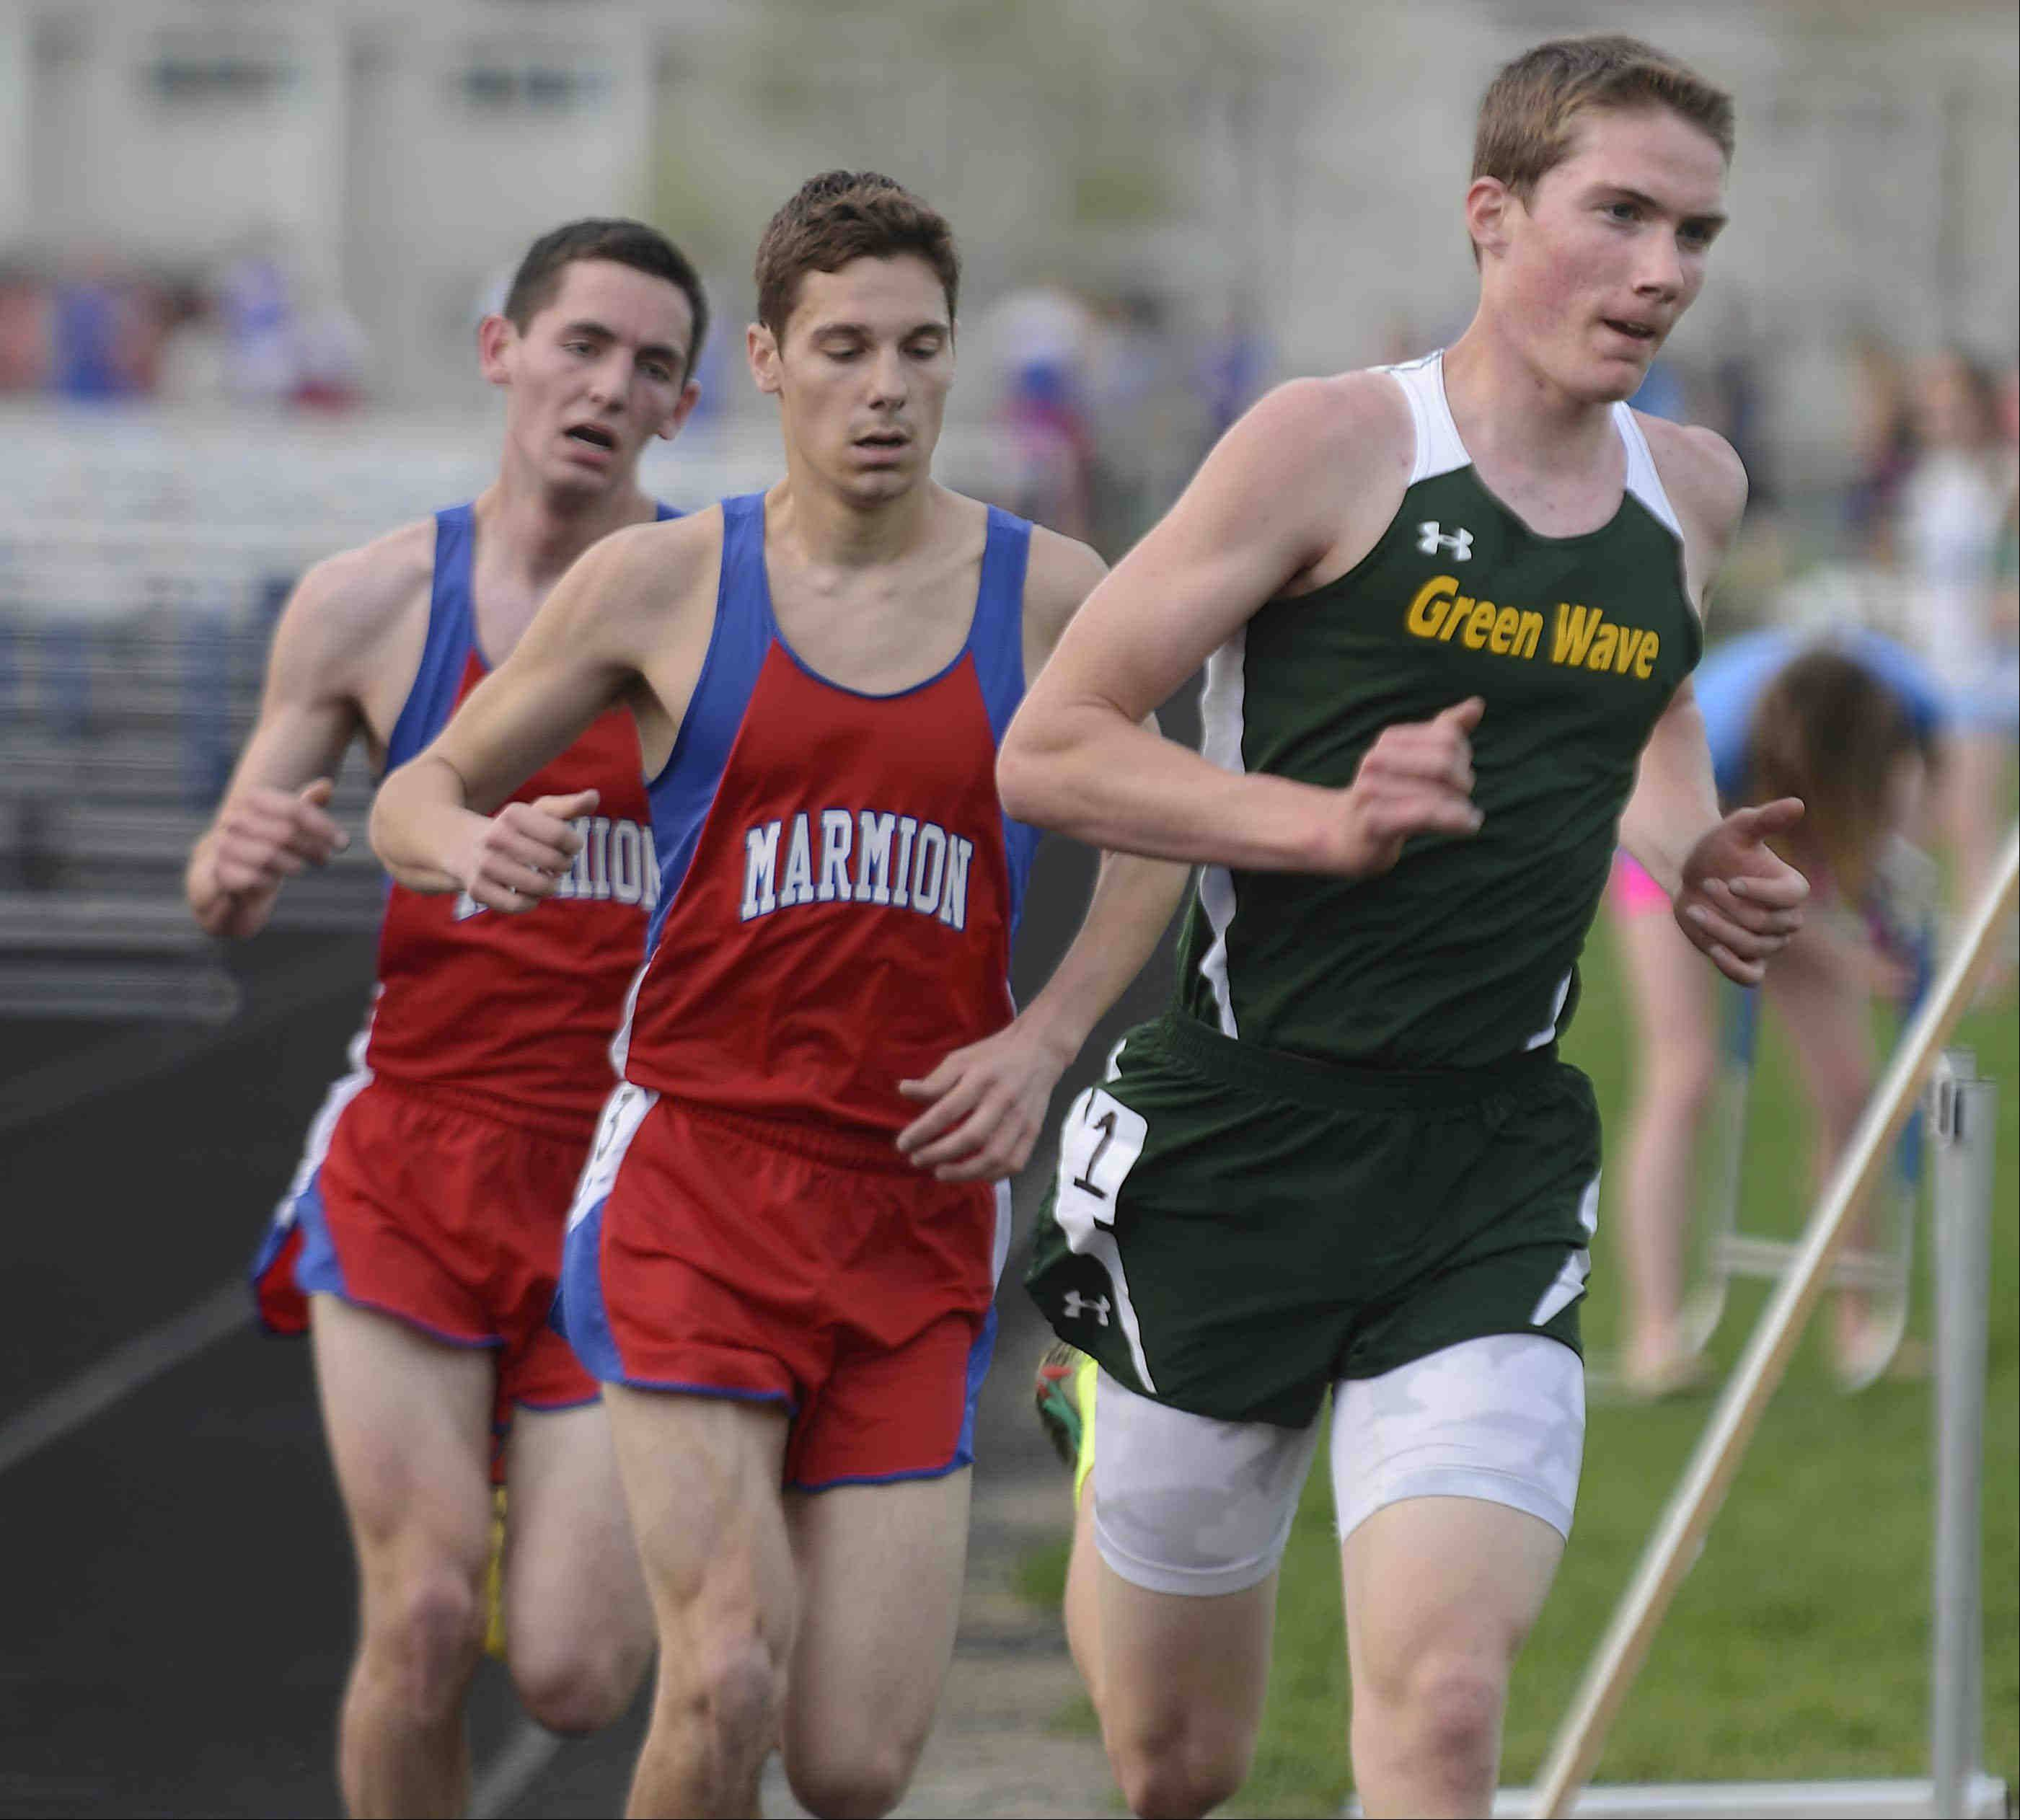 St. Edward's John Danner leads Marmion Academy's Eric Anderson and Nick Delaney in the 3,200-meter fun Wednesday at the Suburban Christian Conference boys track meet at Aurora Central Catholic. Danner won the event.